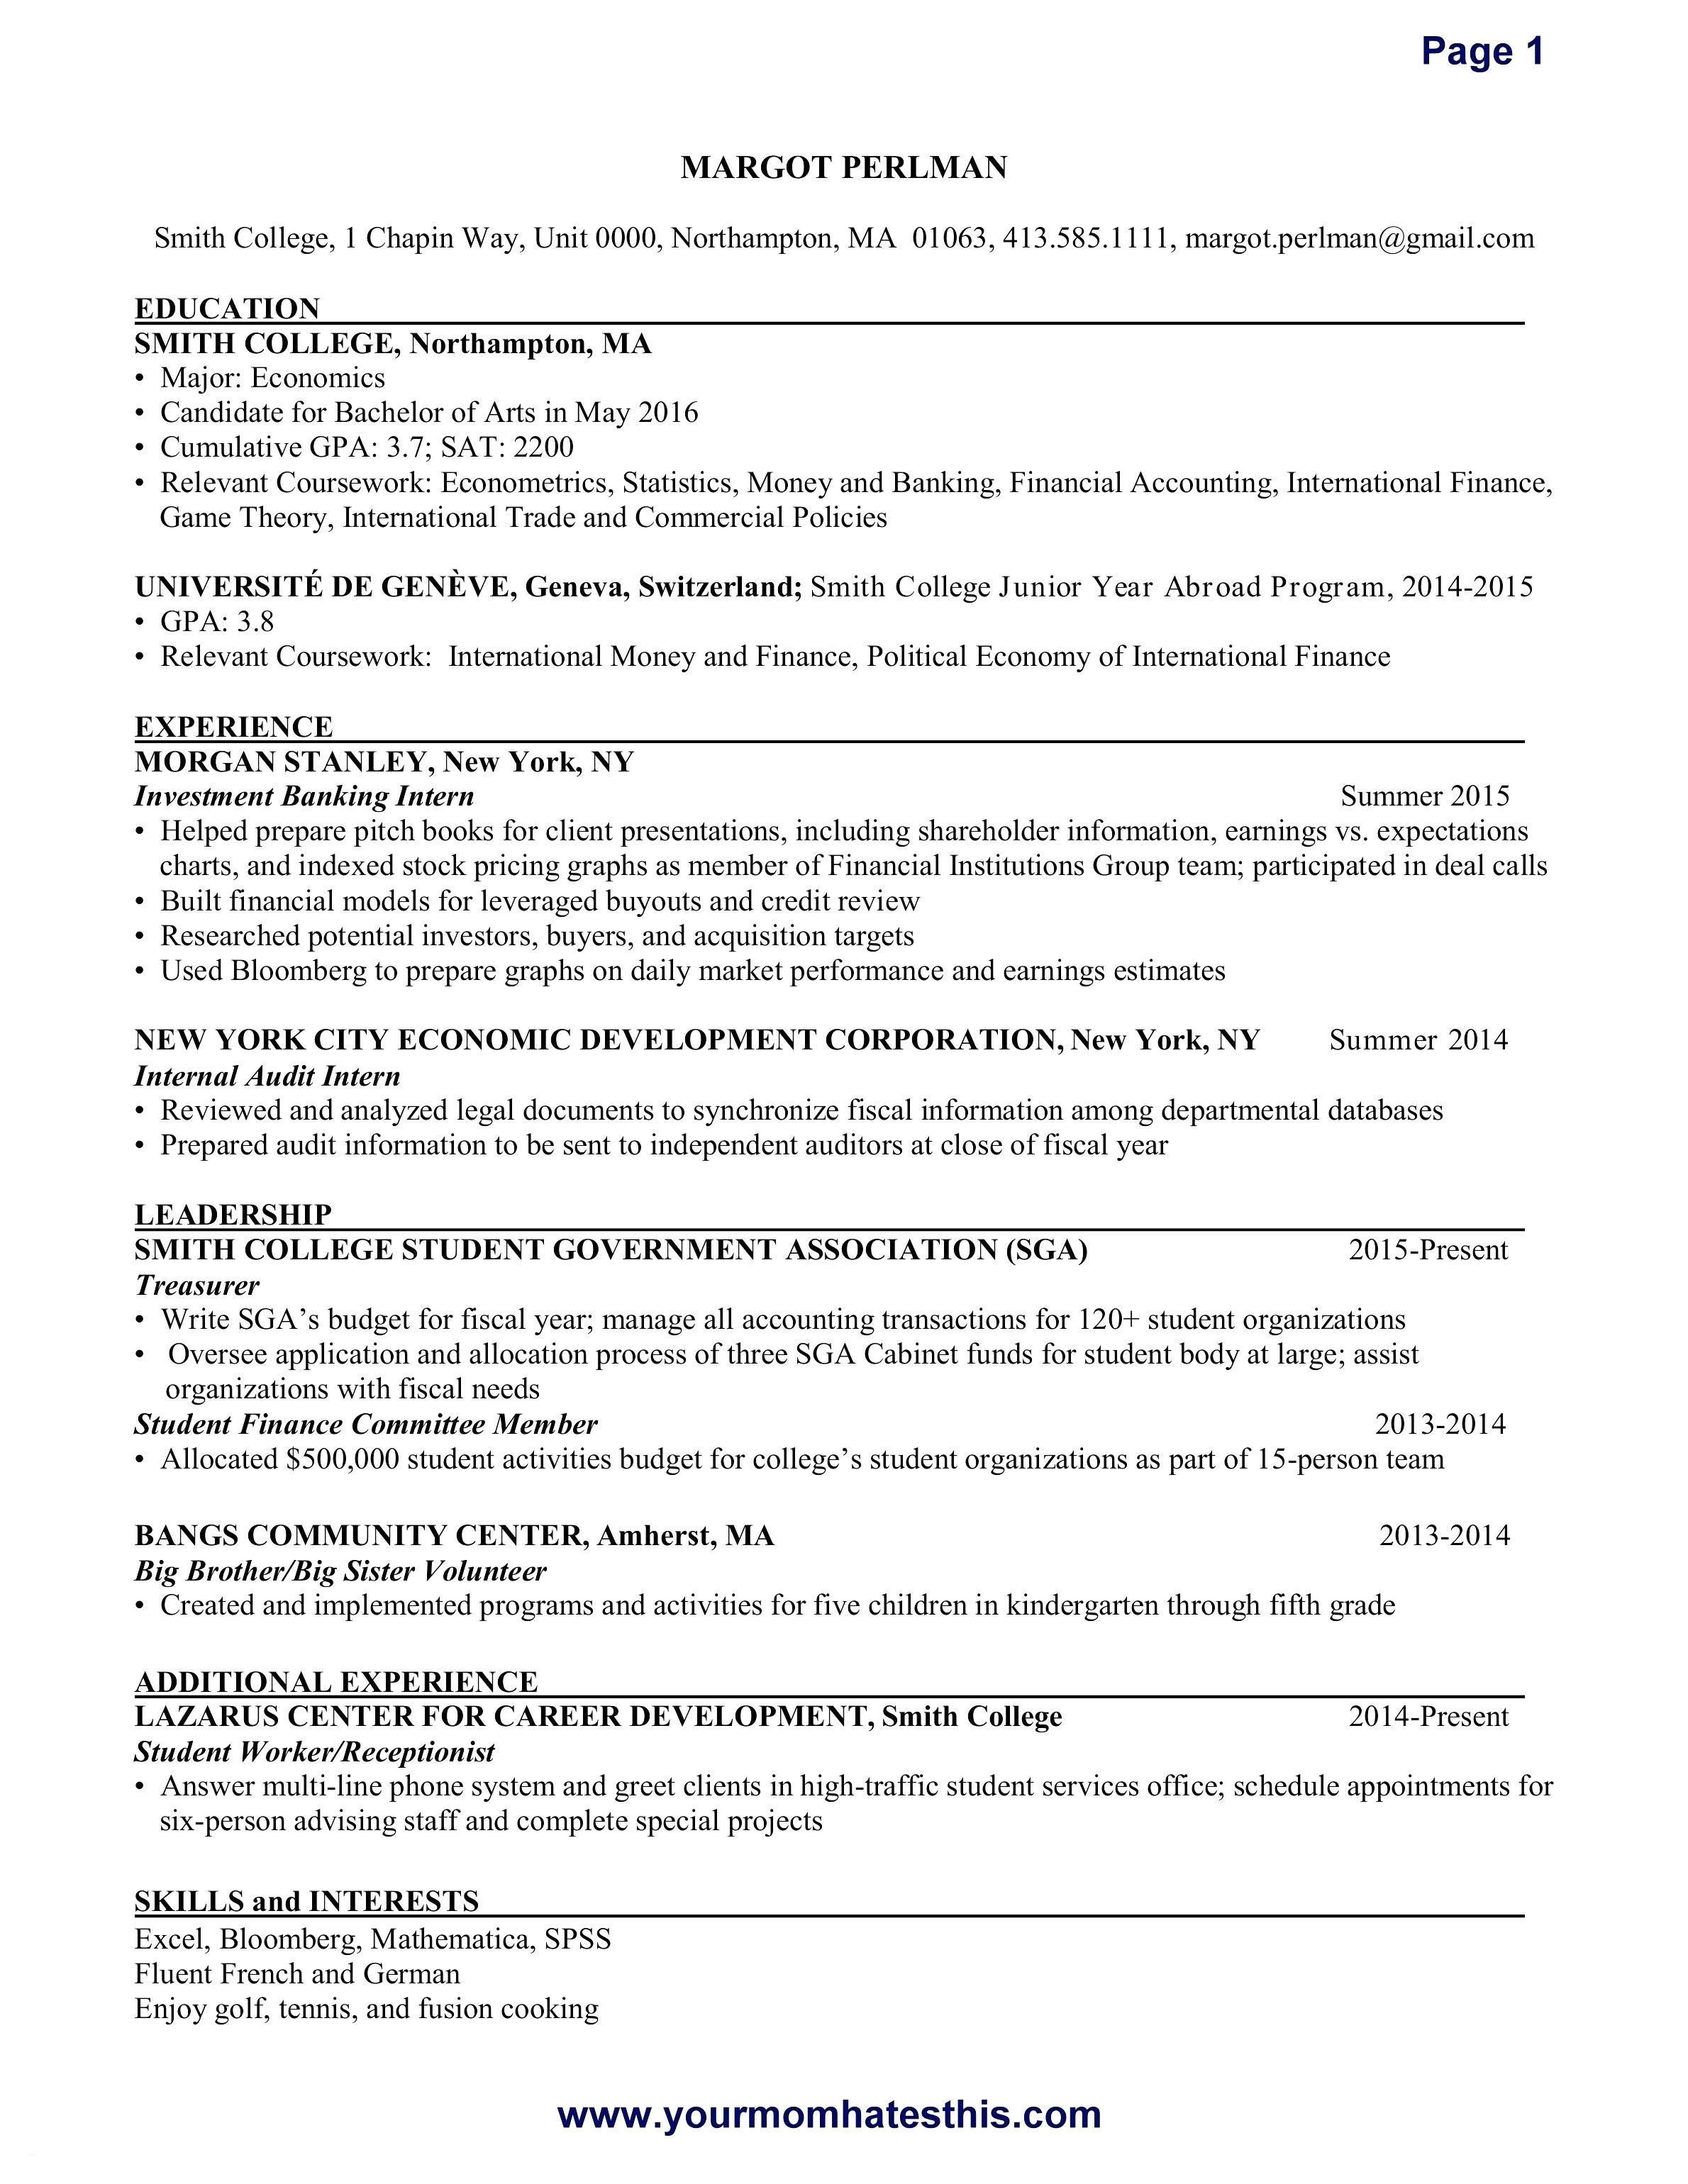 Chronological order Resume Template - Awesome Security Ficer Resume Sample